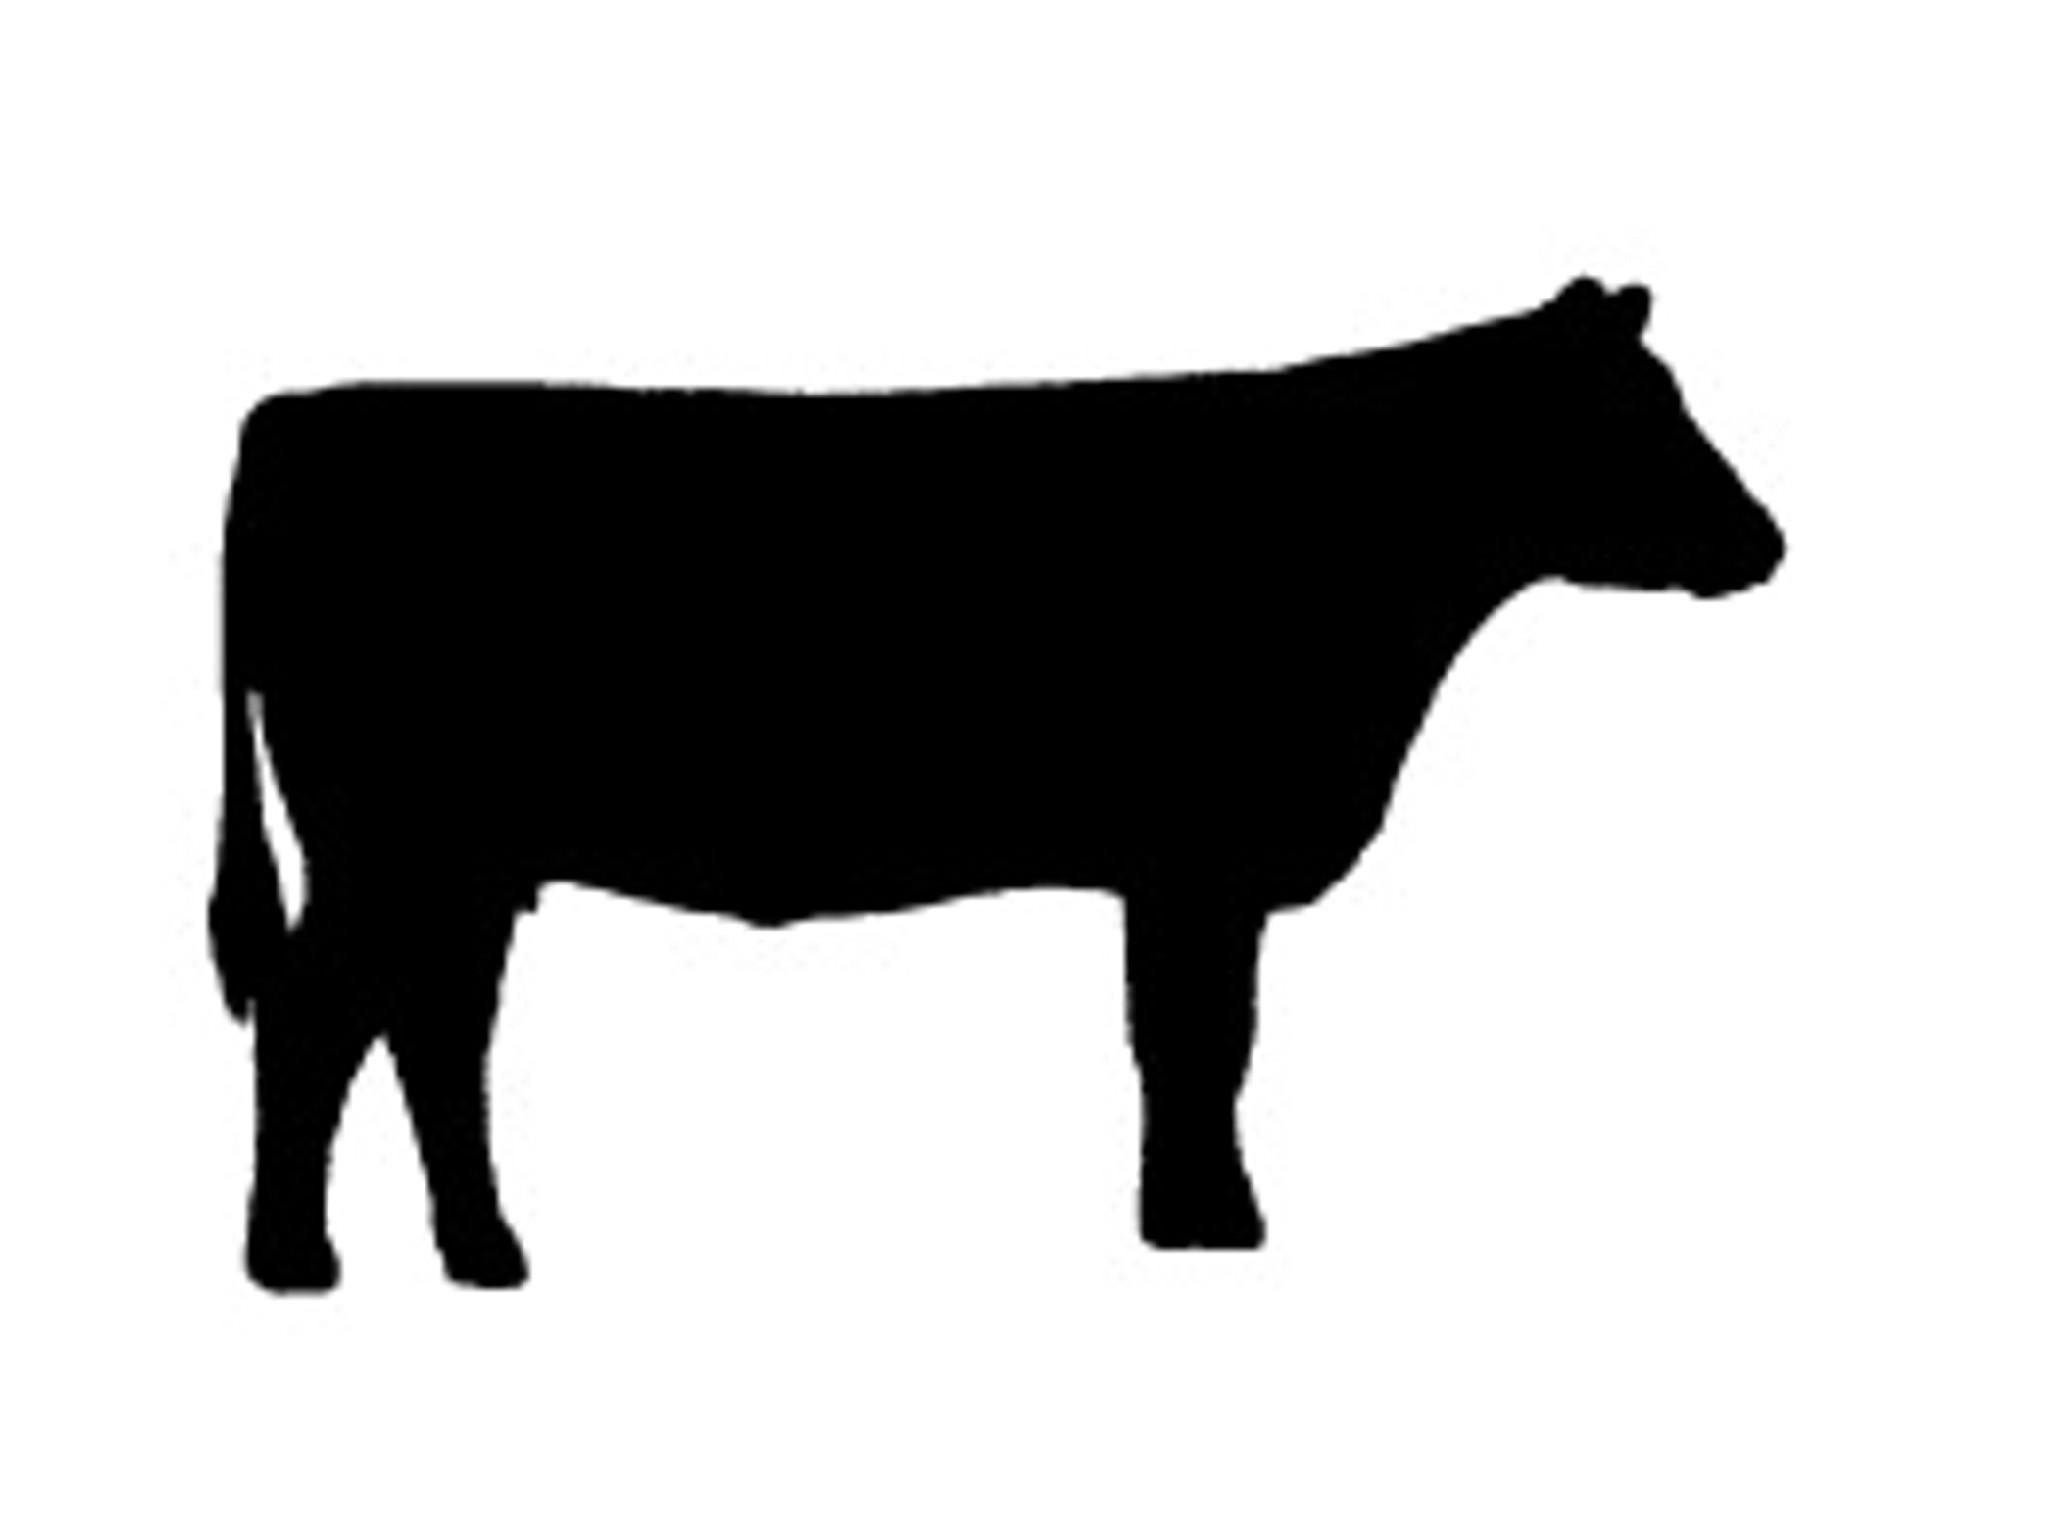 Cattle show clipart 20 free Cliparts | Download images on ...